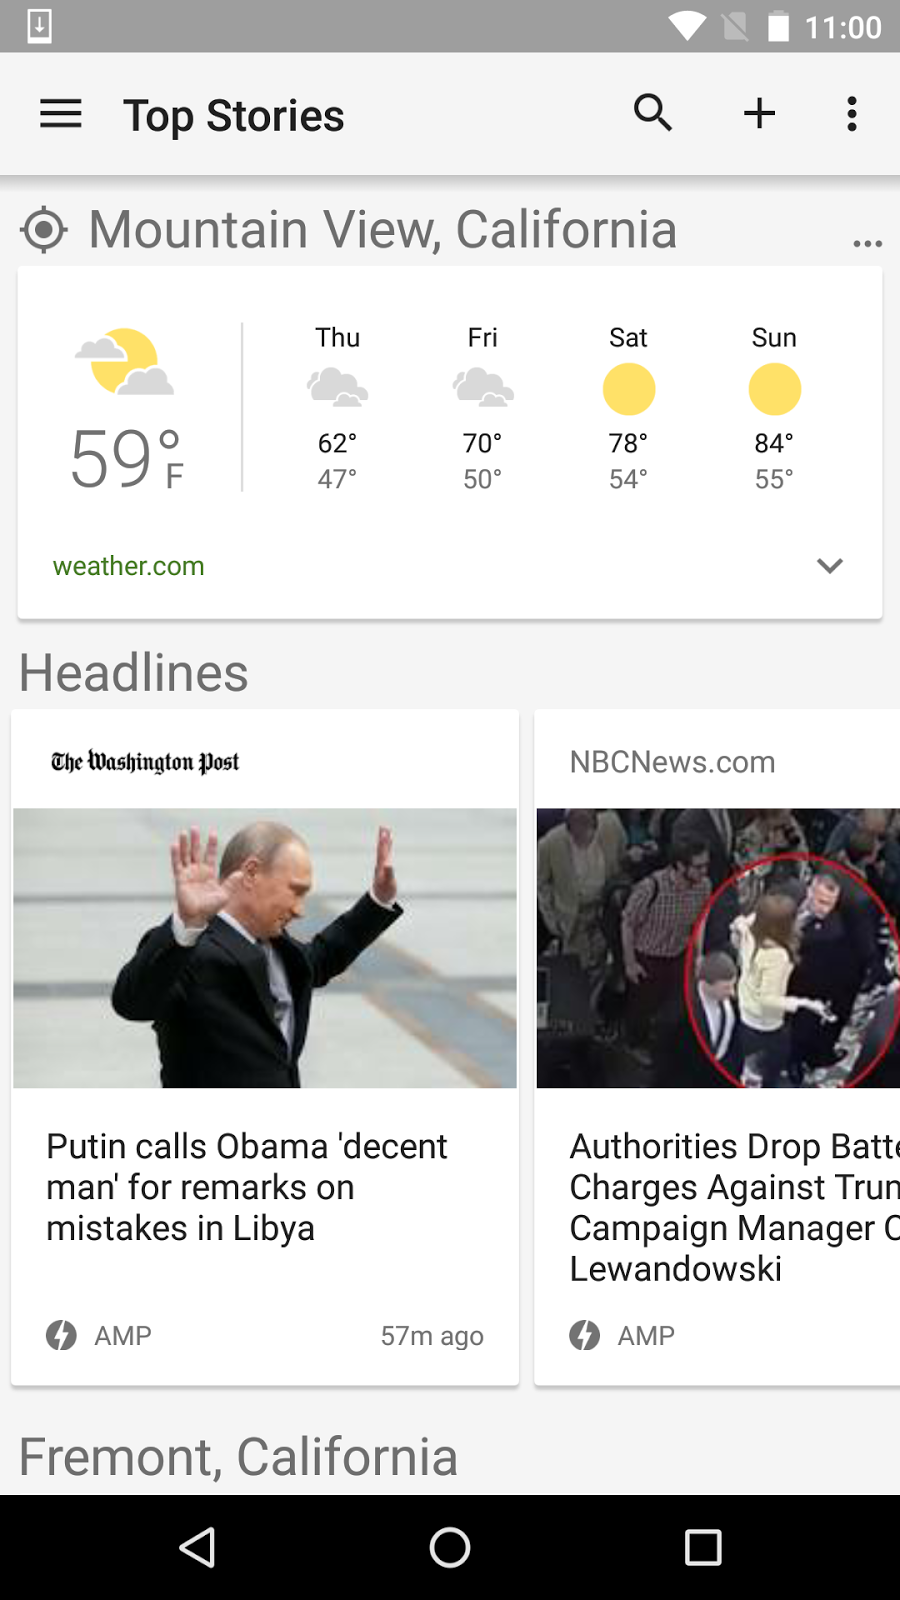 AMP articles in Google News on Android.